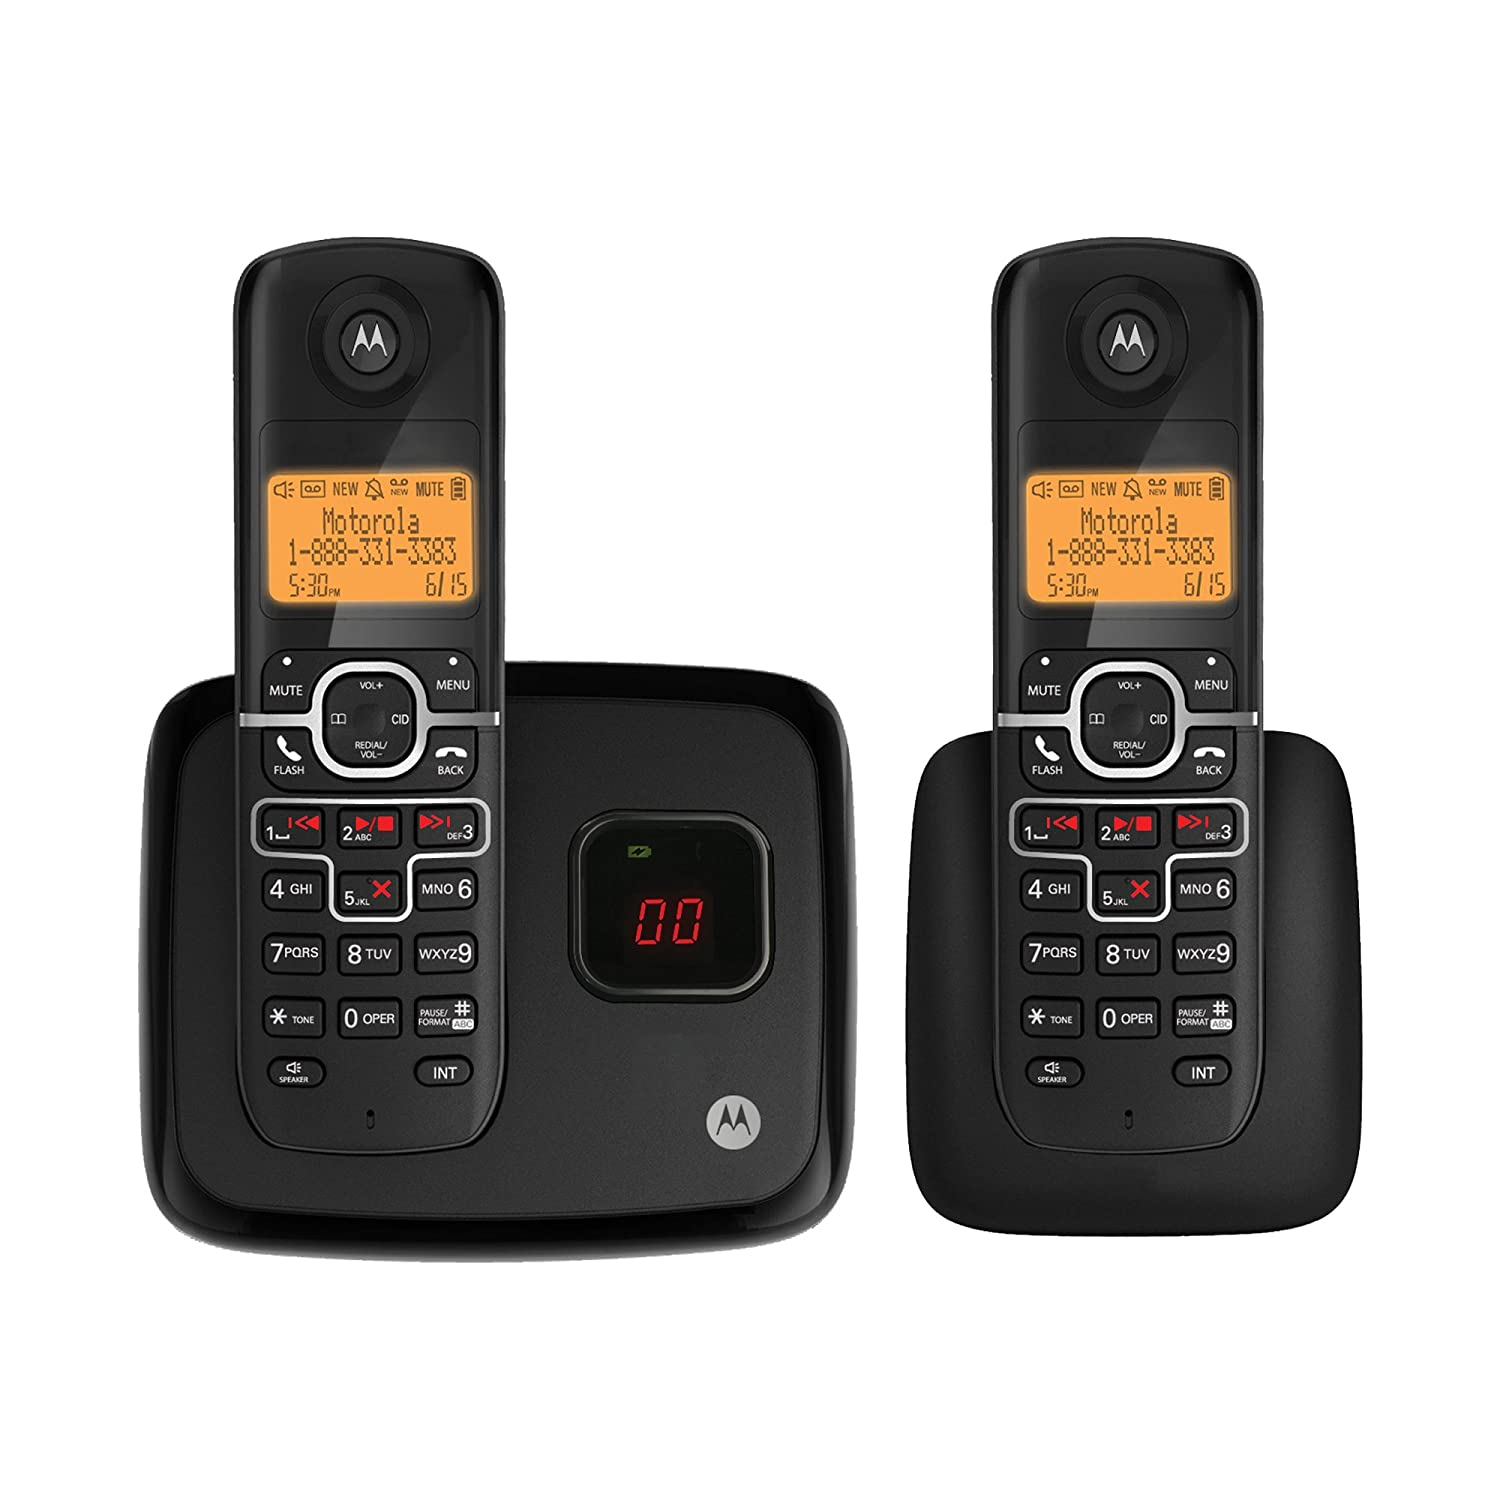 Motorola DECT 6.0 Enhanced Cordless Phone with 2 Handsets ...